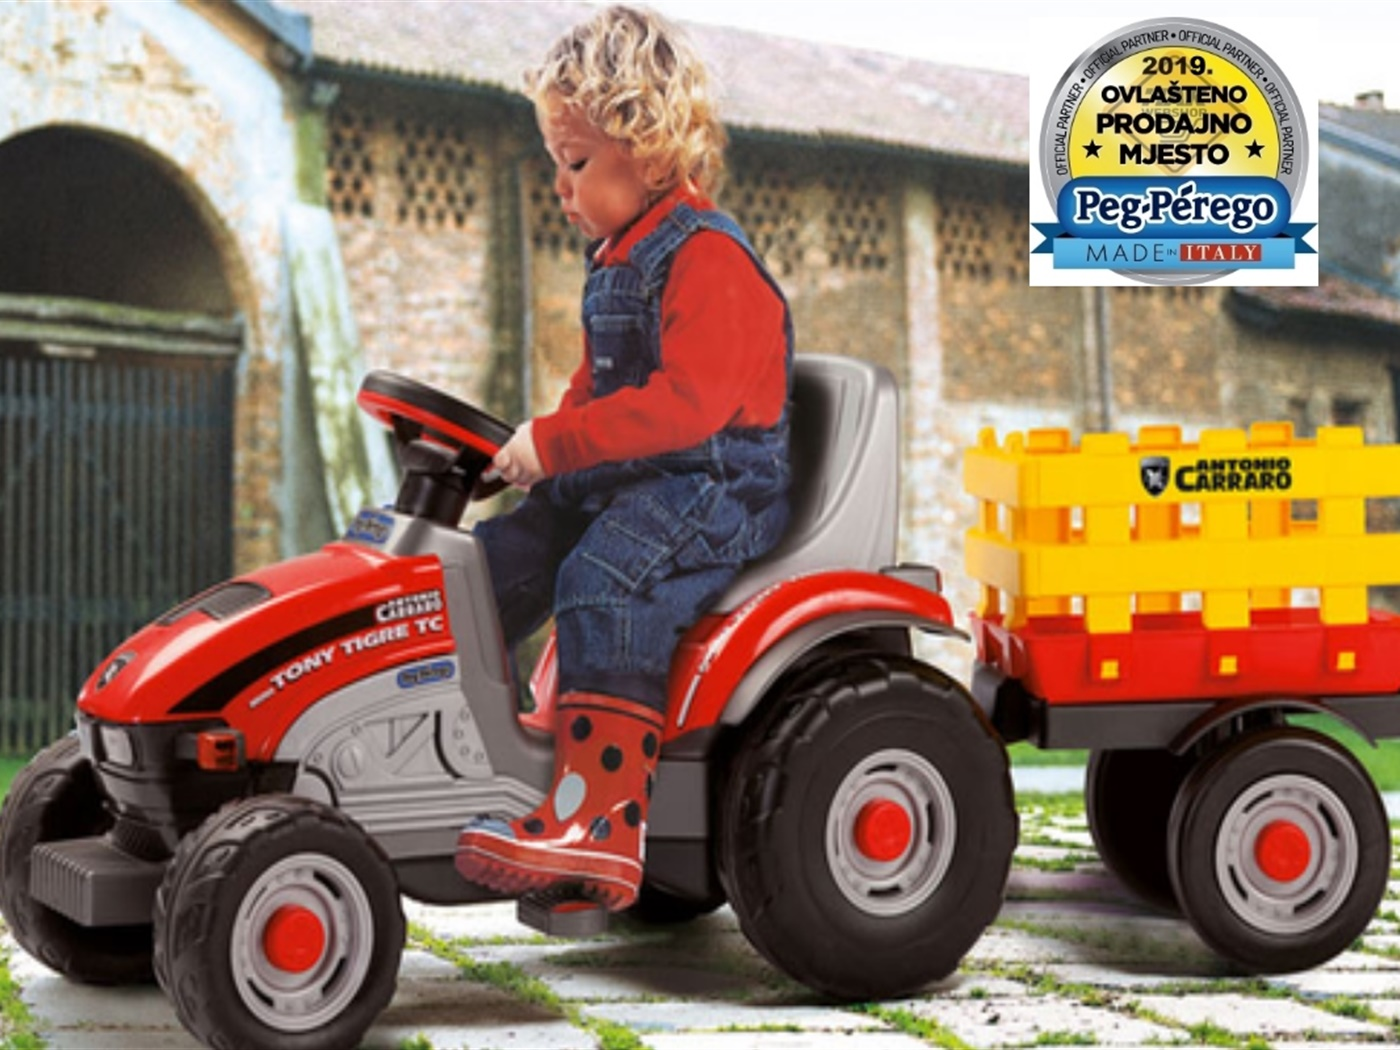 Peg Perego Mini Tony Tigre